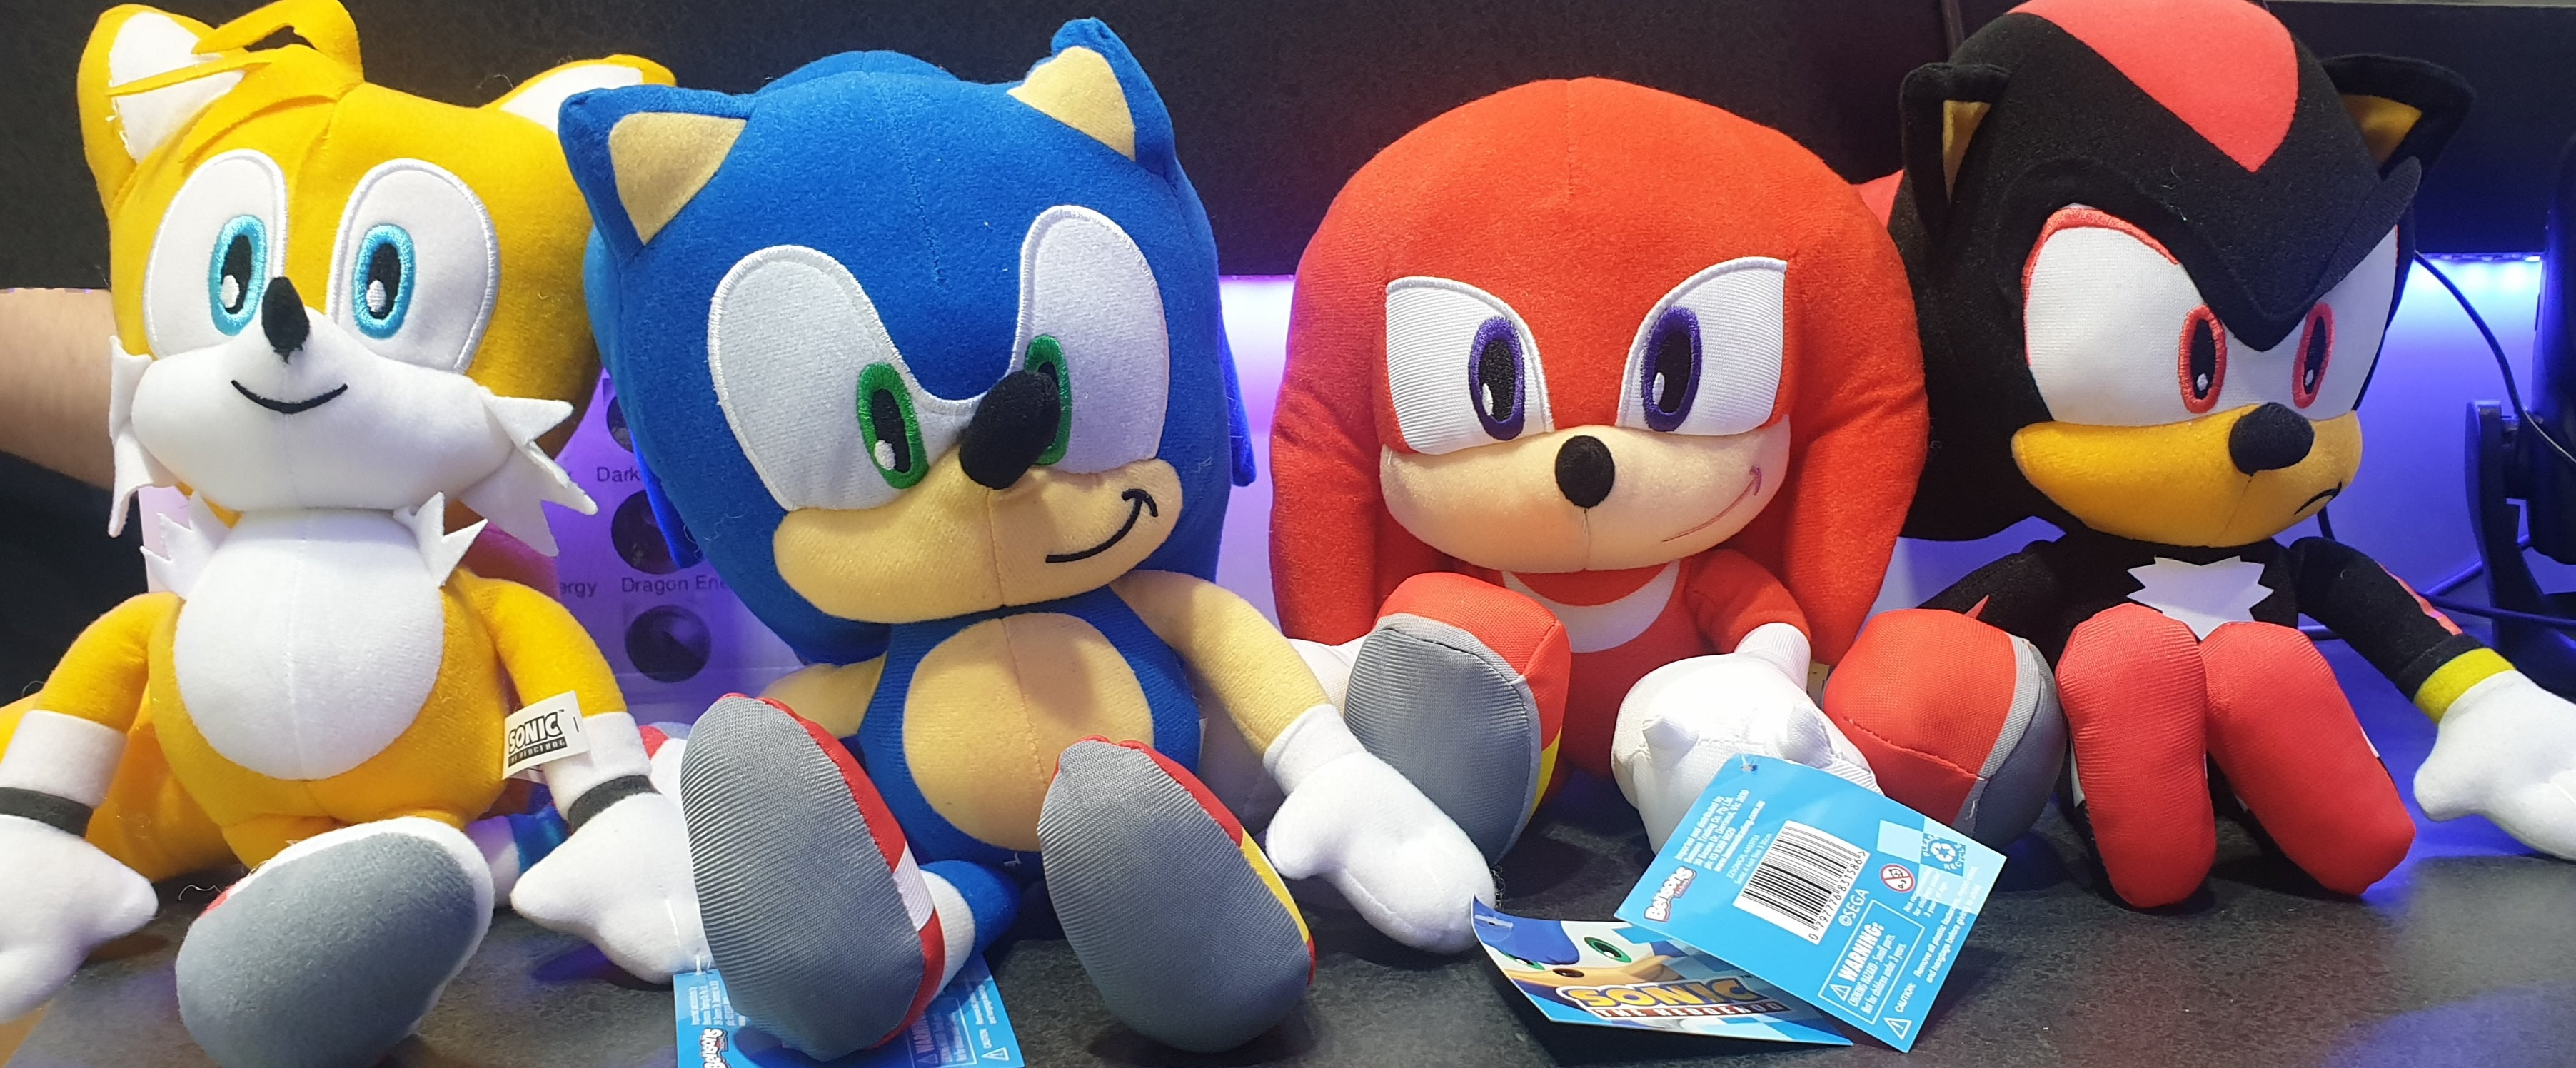 Sonic the Hedgehog 30cm Plush Assortment | Gametraders Macarthur Square